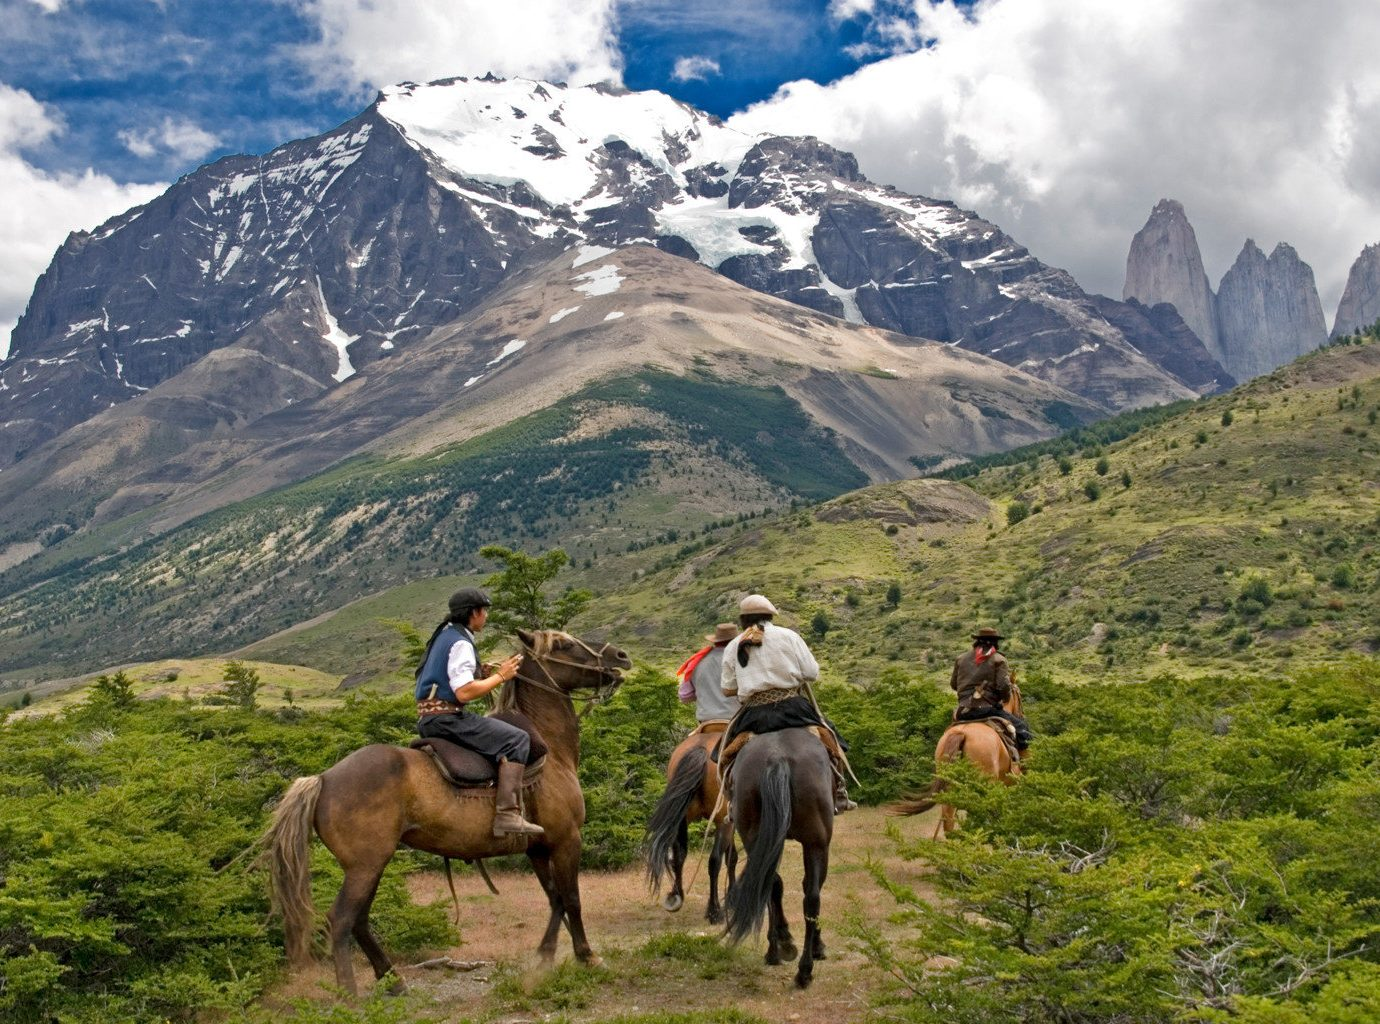 Adventure Mountains Outdoor Activities Outdoors Scenic views Sport mountain sky outdoor grass mountainous landforms landform wilderness mountain range pasture Nature backpacking walking landscape sports trail riding hiking valley alps plateau meadow hillside highland